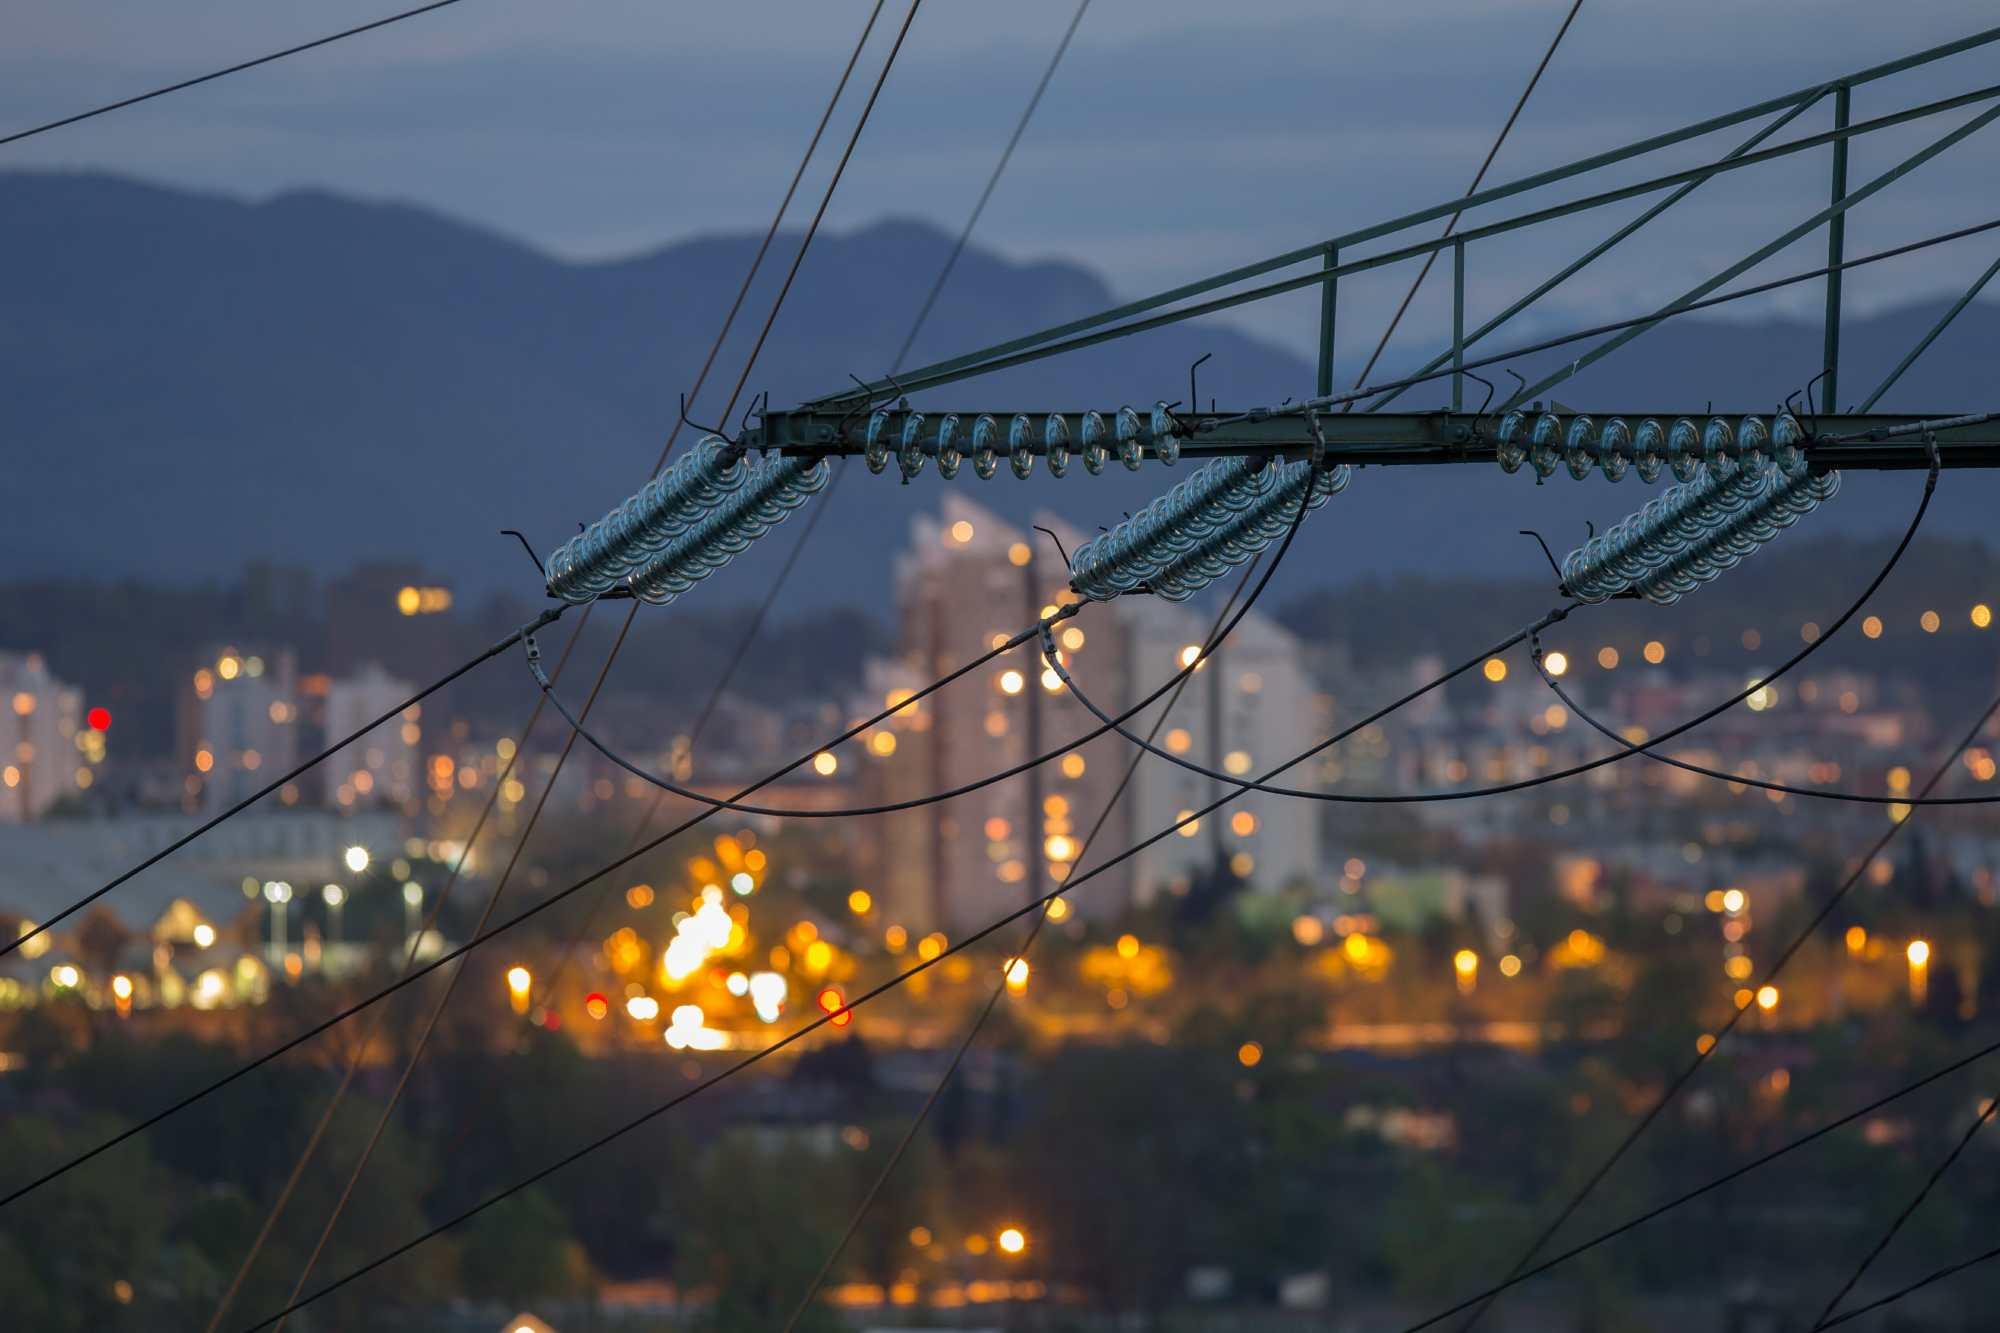 hight resolution of summer electrical demands may still overwhelm the power grid according to industry experts